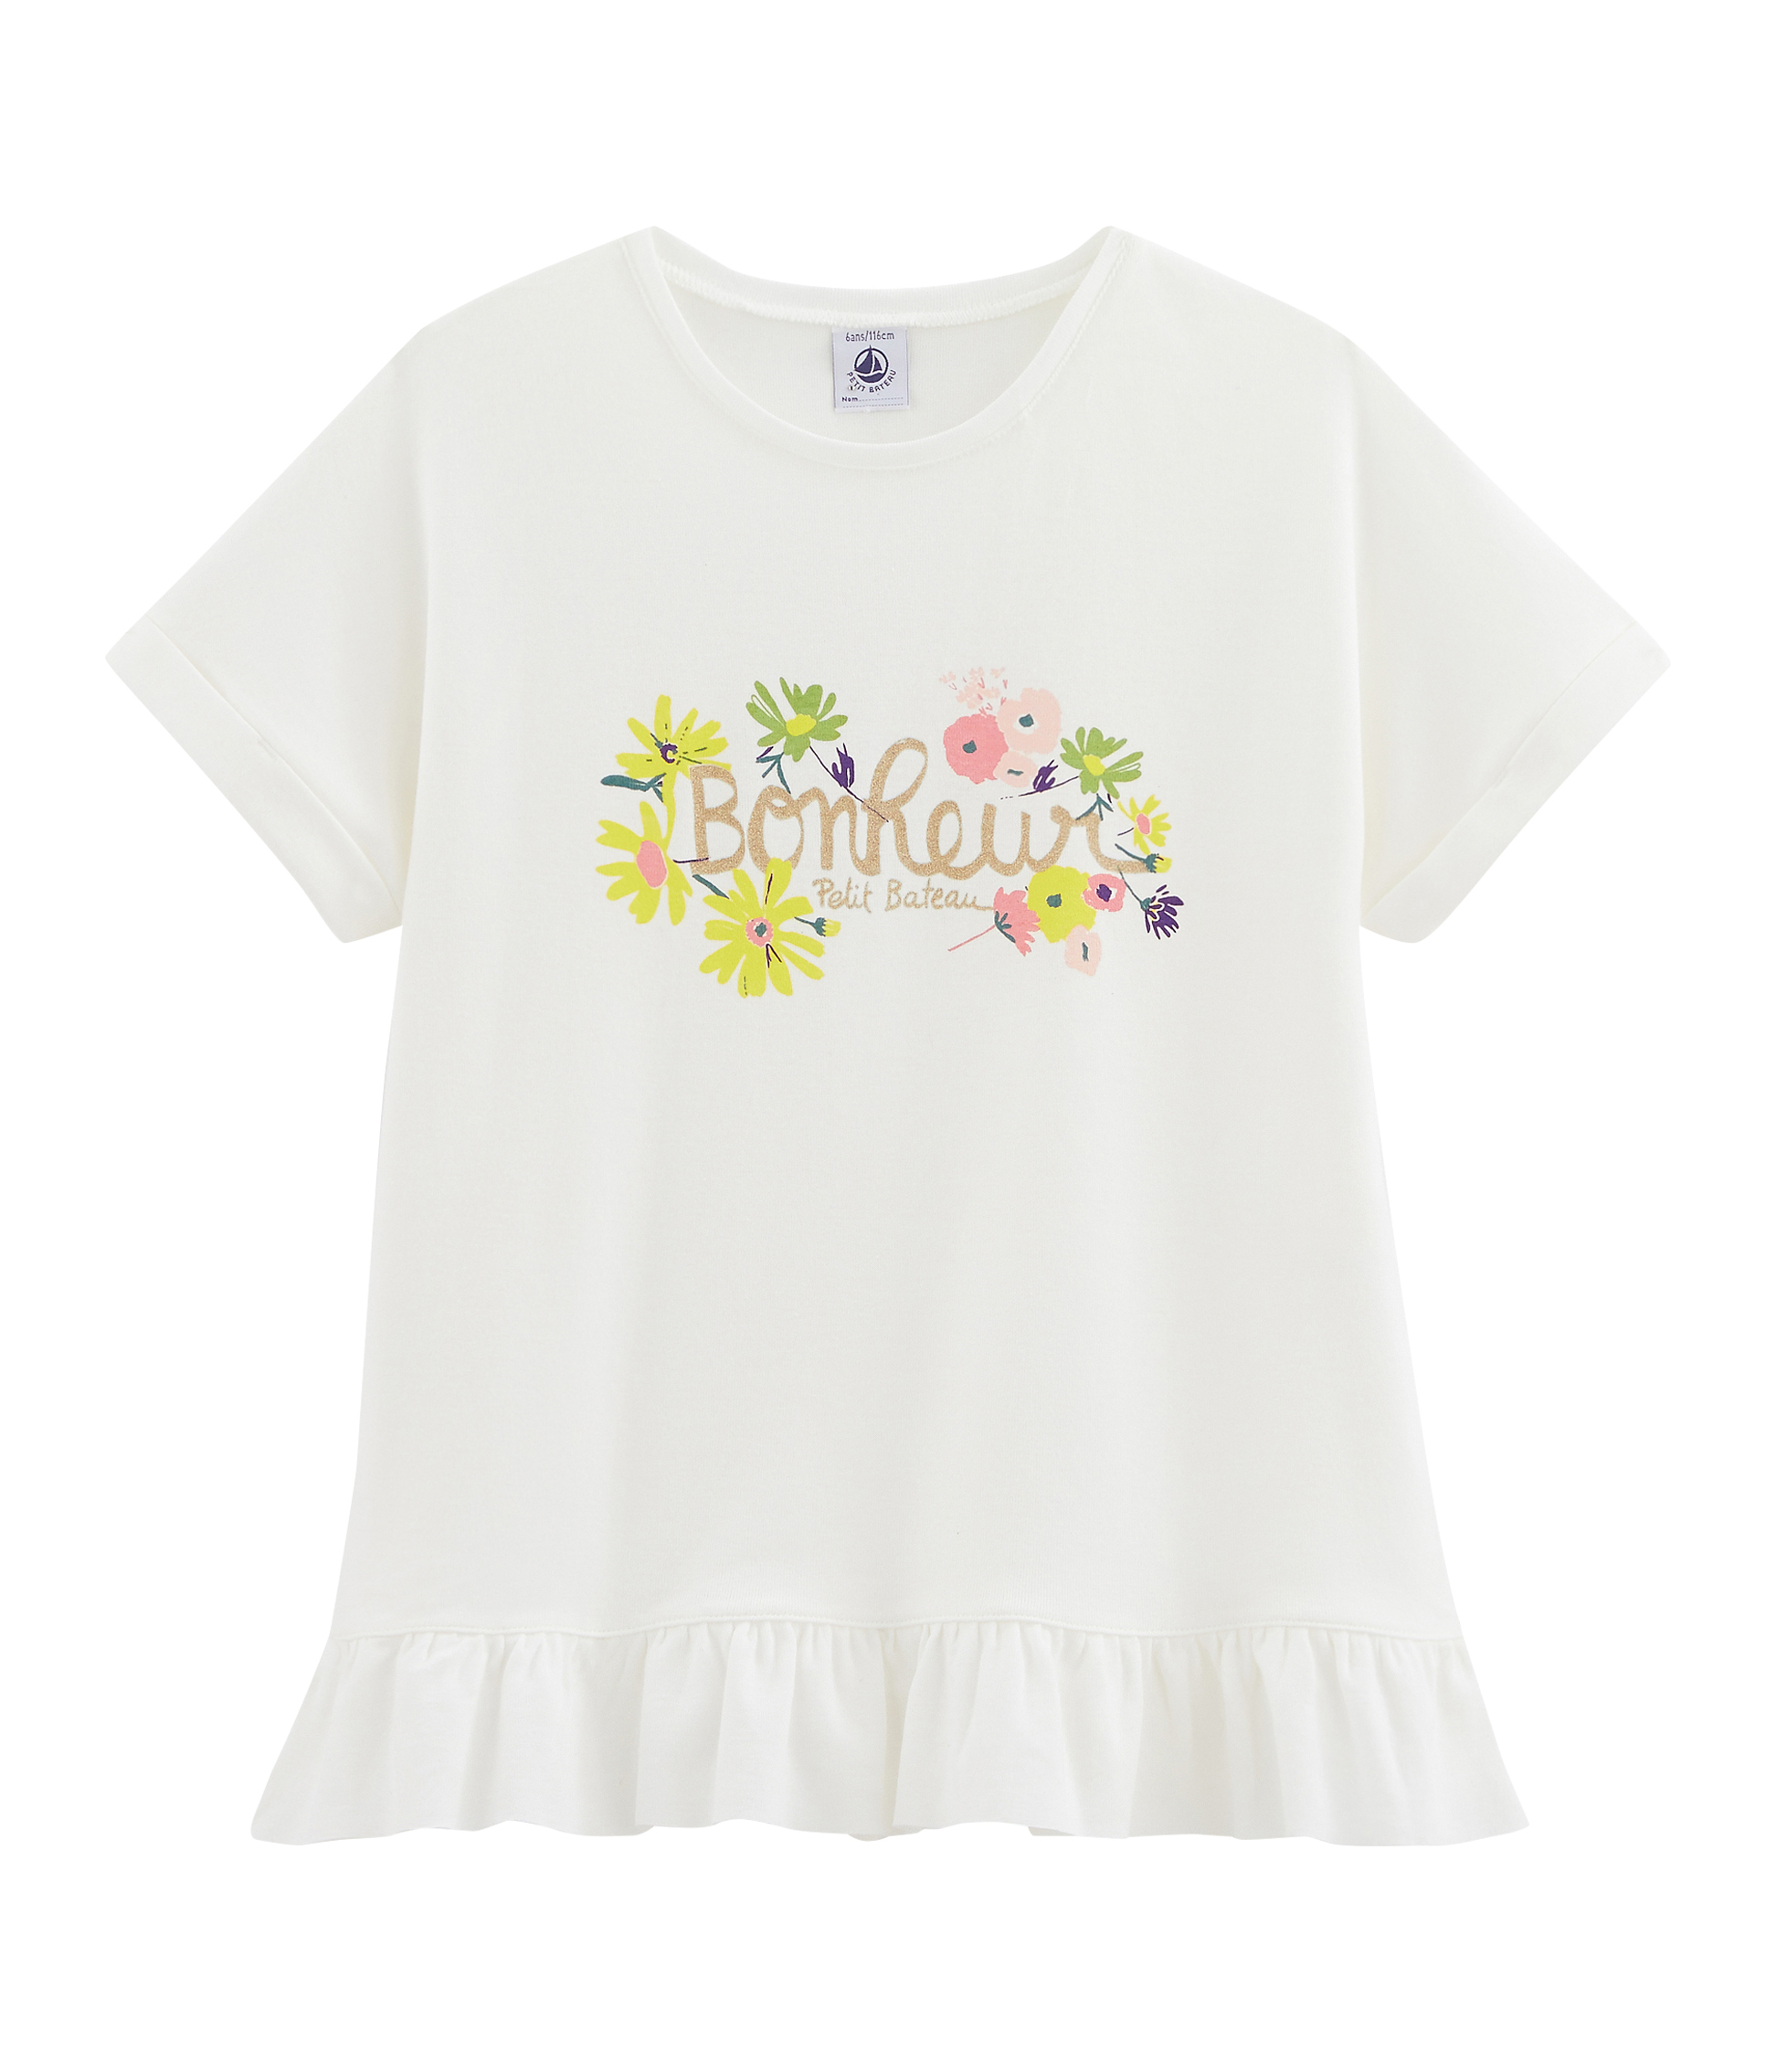 Loyalt Summer Childrens Girls Short Sleeve Solid Color Clothes Pleated Top T-Shirt